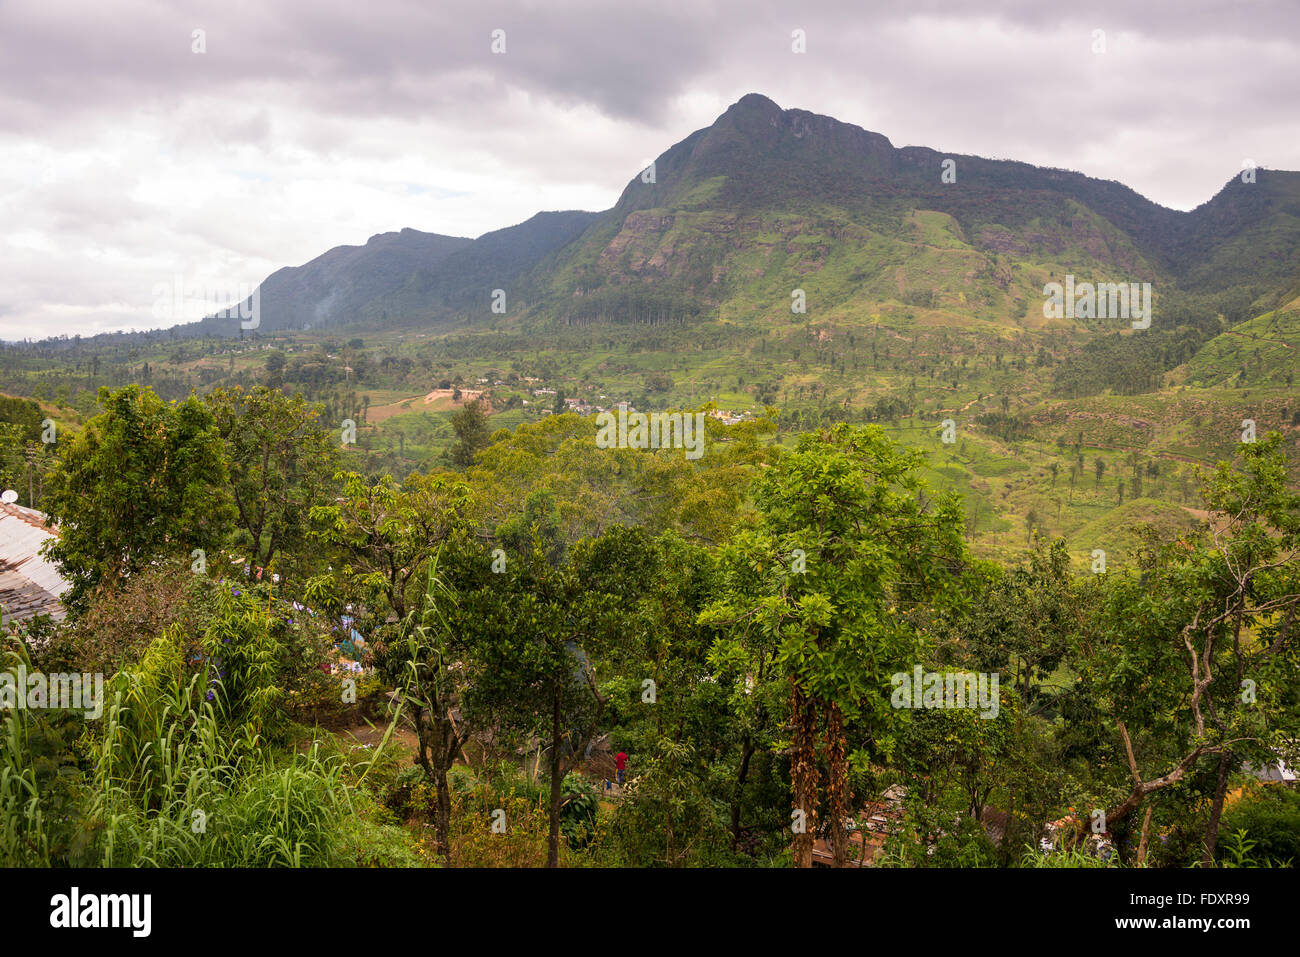 The Great Western Mountain peak near Talawakele in Central Province, Sri Lanka. Stock Photo